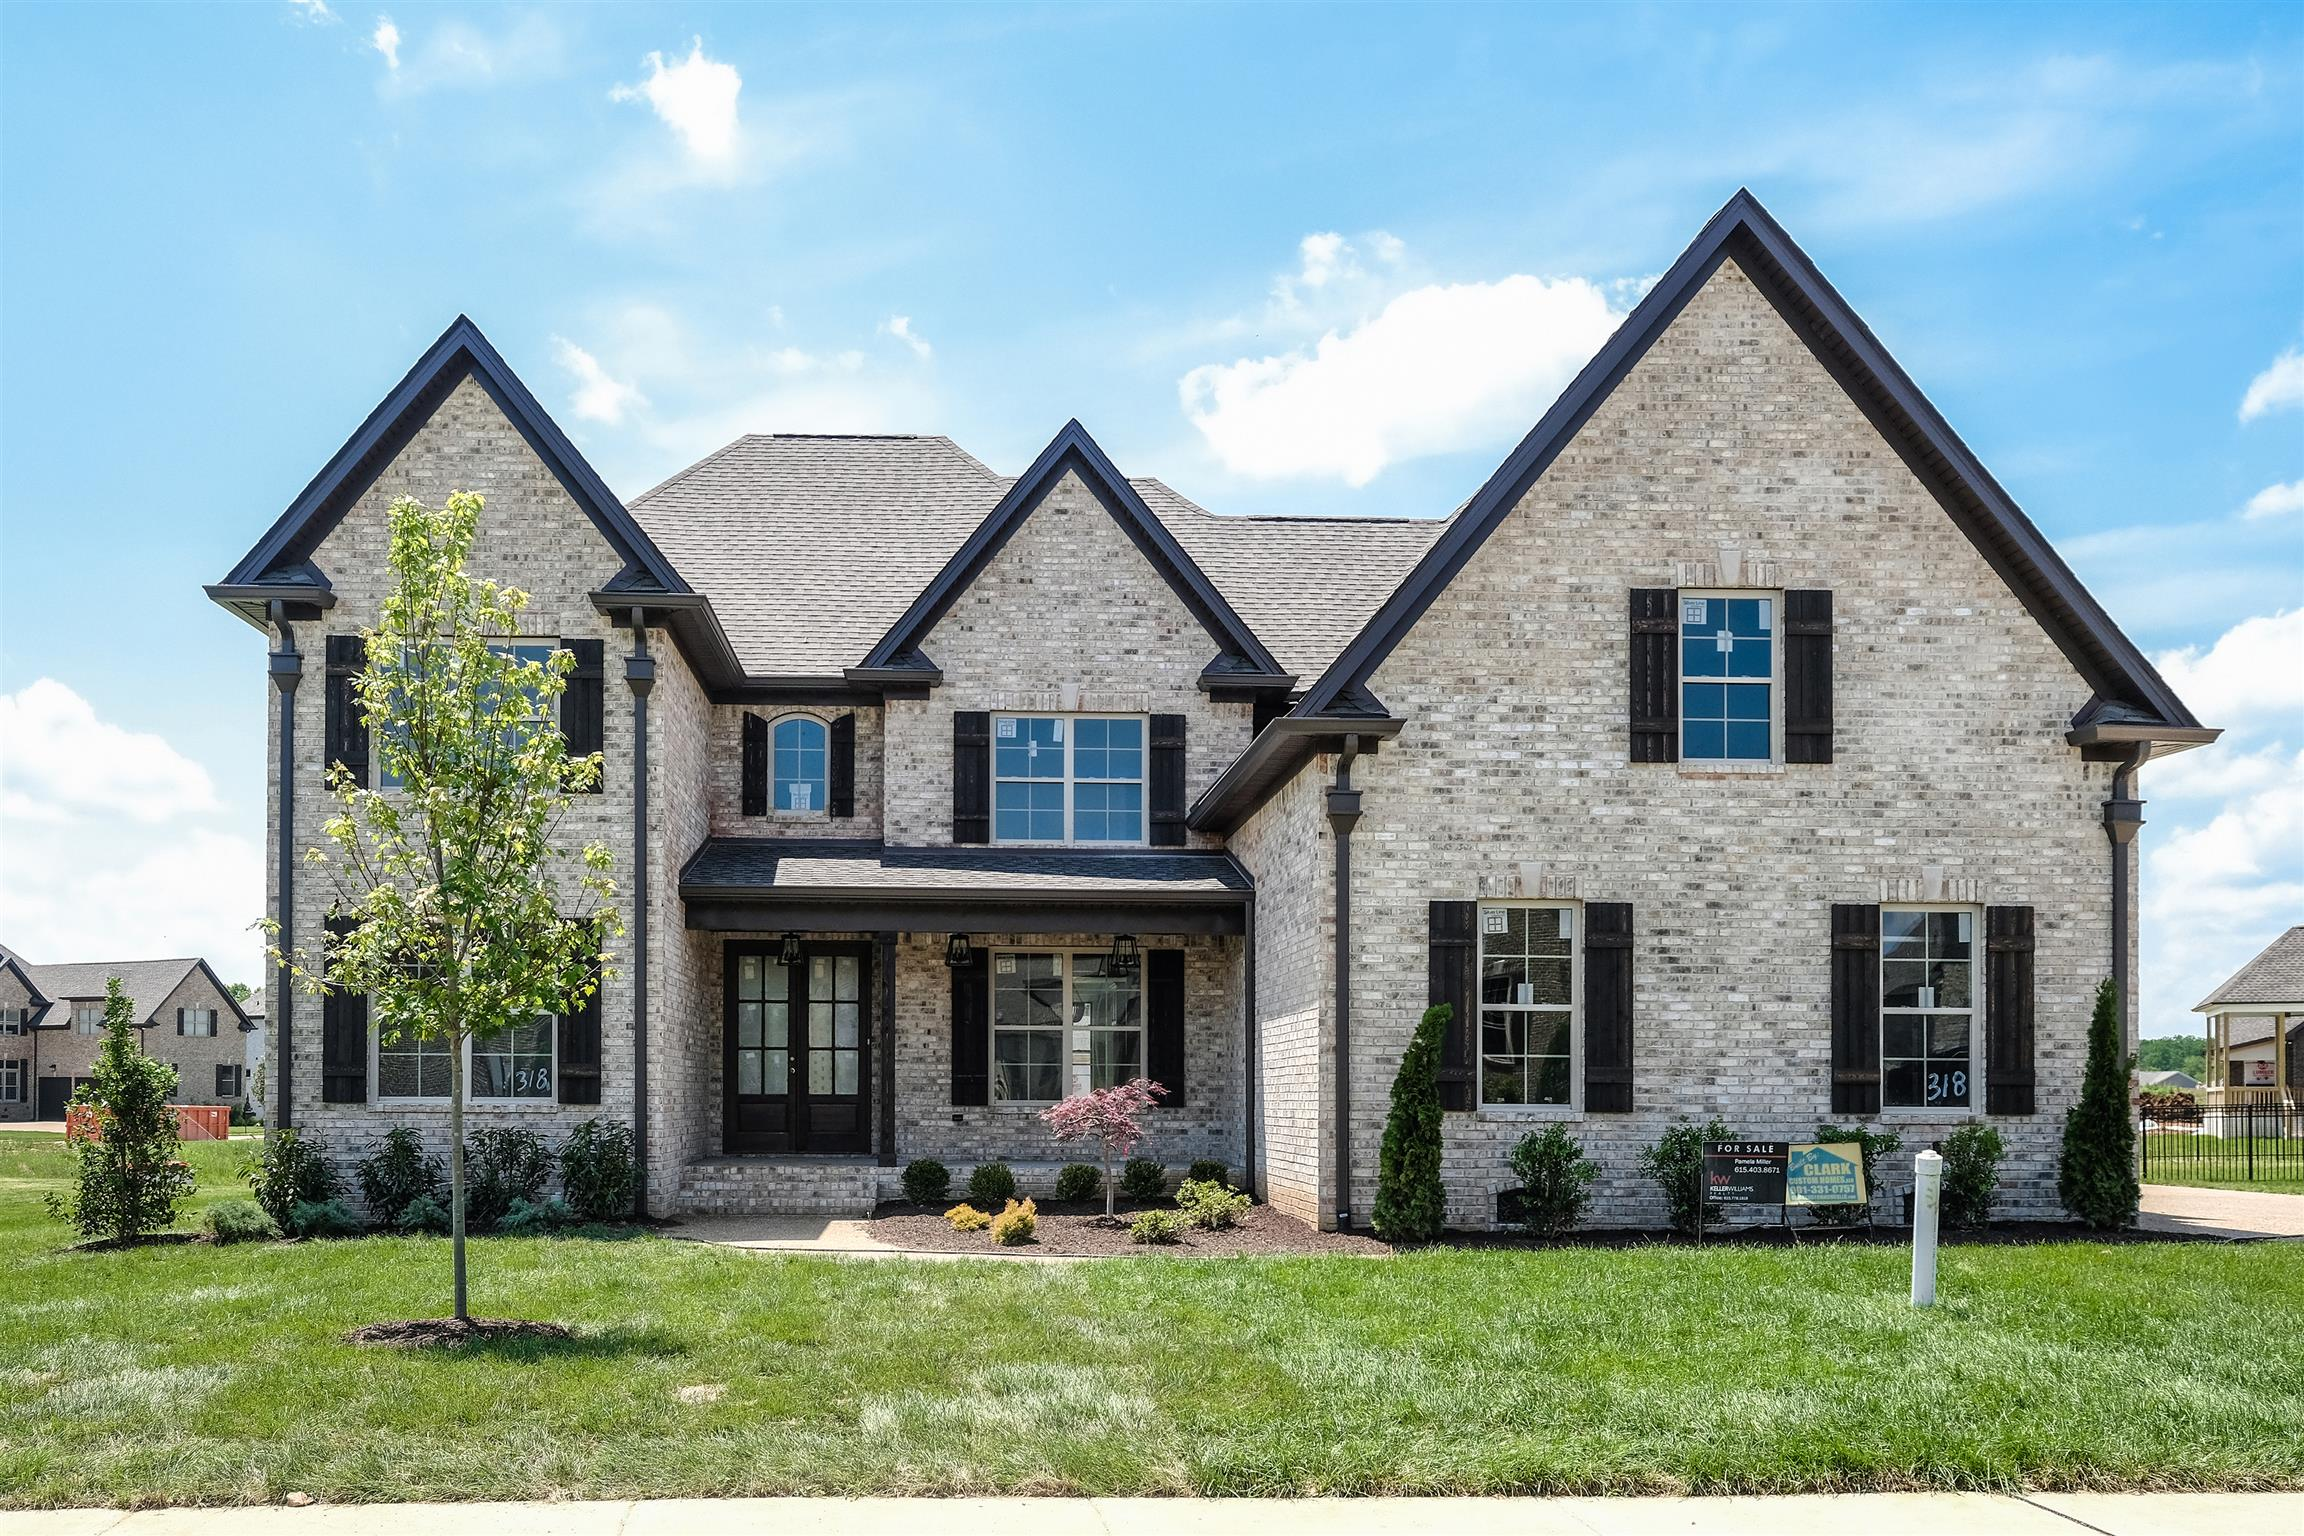 4014 Cardigan Ln (Lot 318), Spring Hill, Tennessee